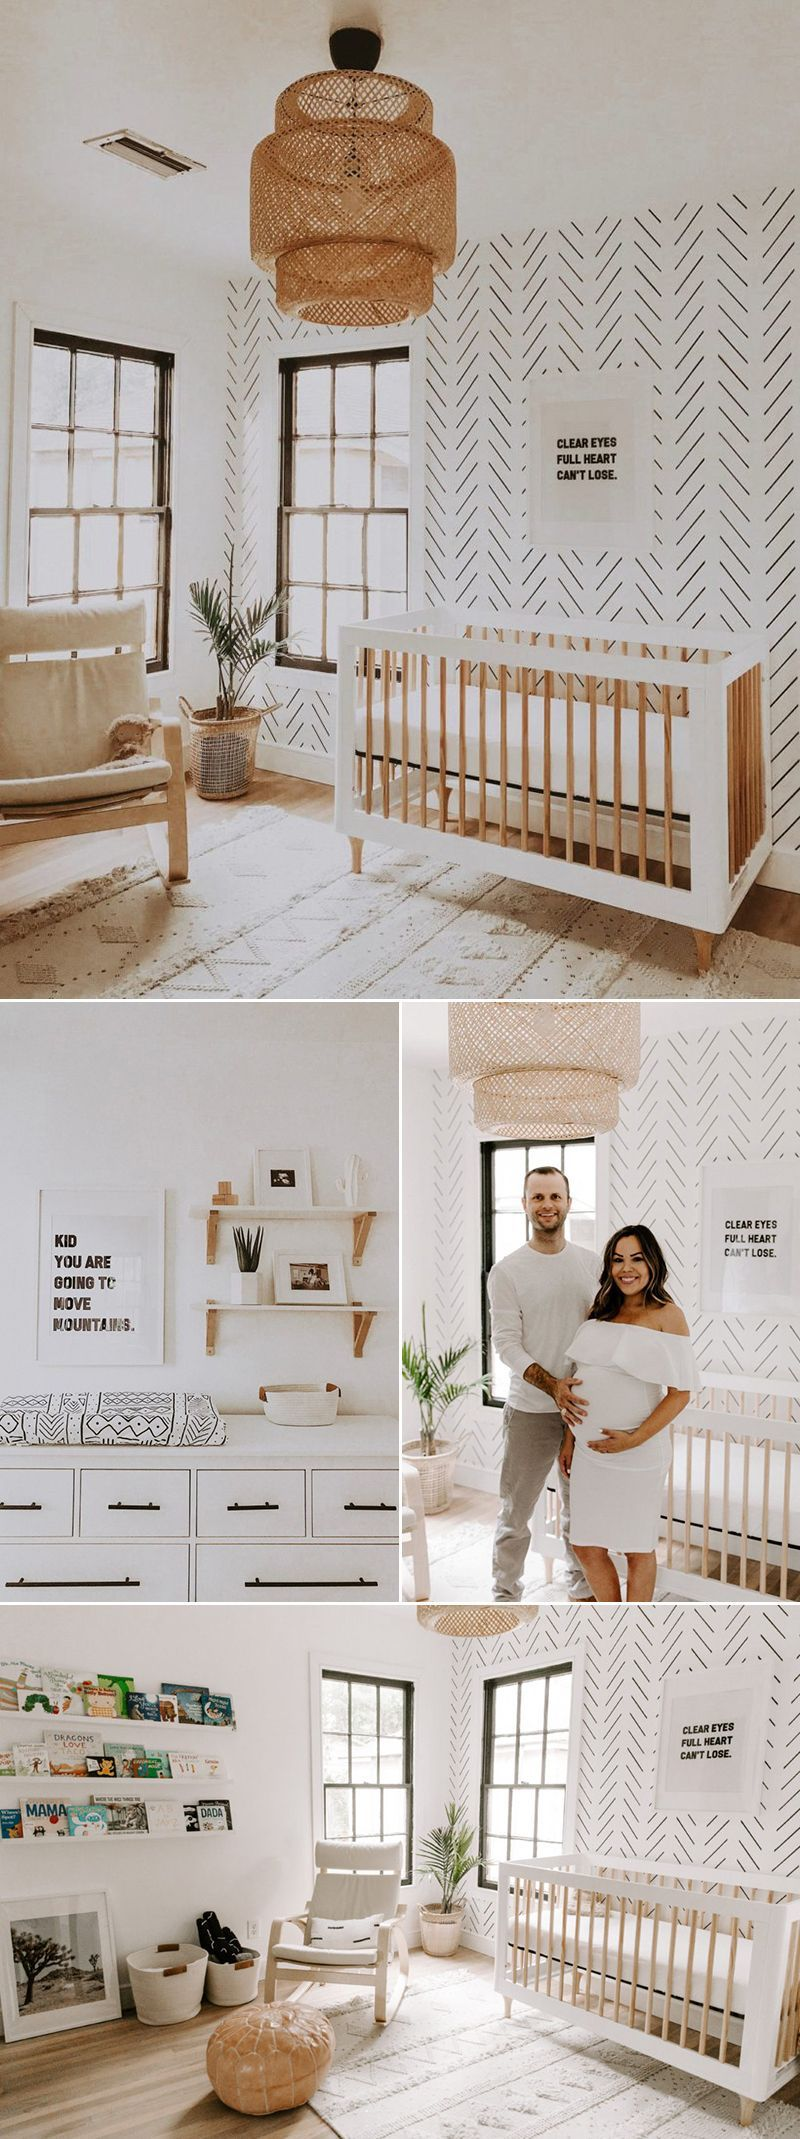 Amazing Nursery Decorating Ideas – Baby Room Design For Chic Parent Renovation